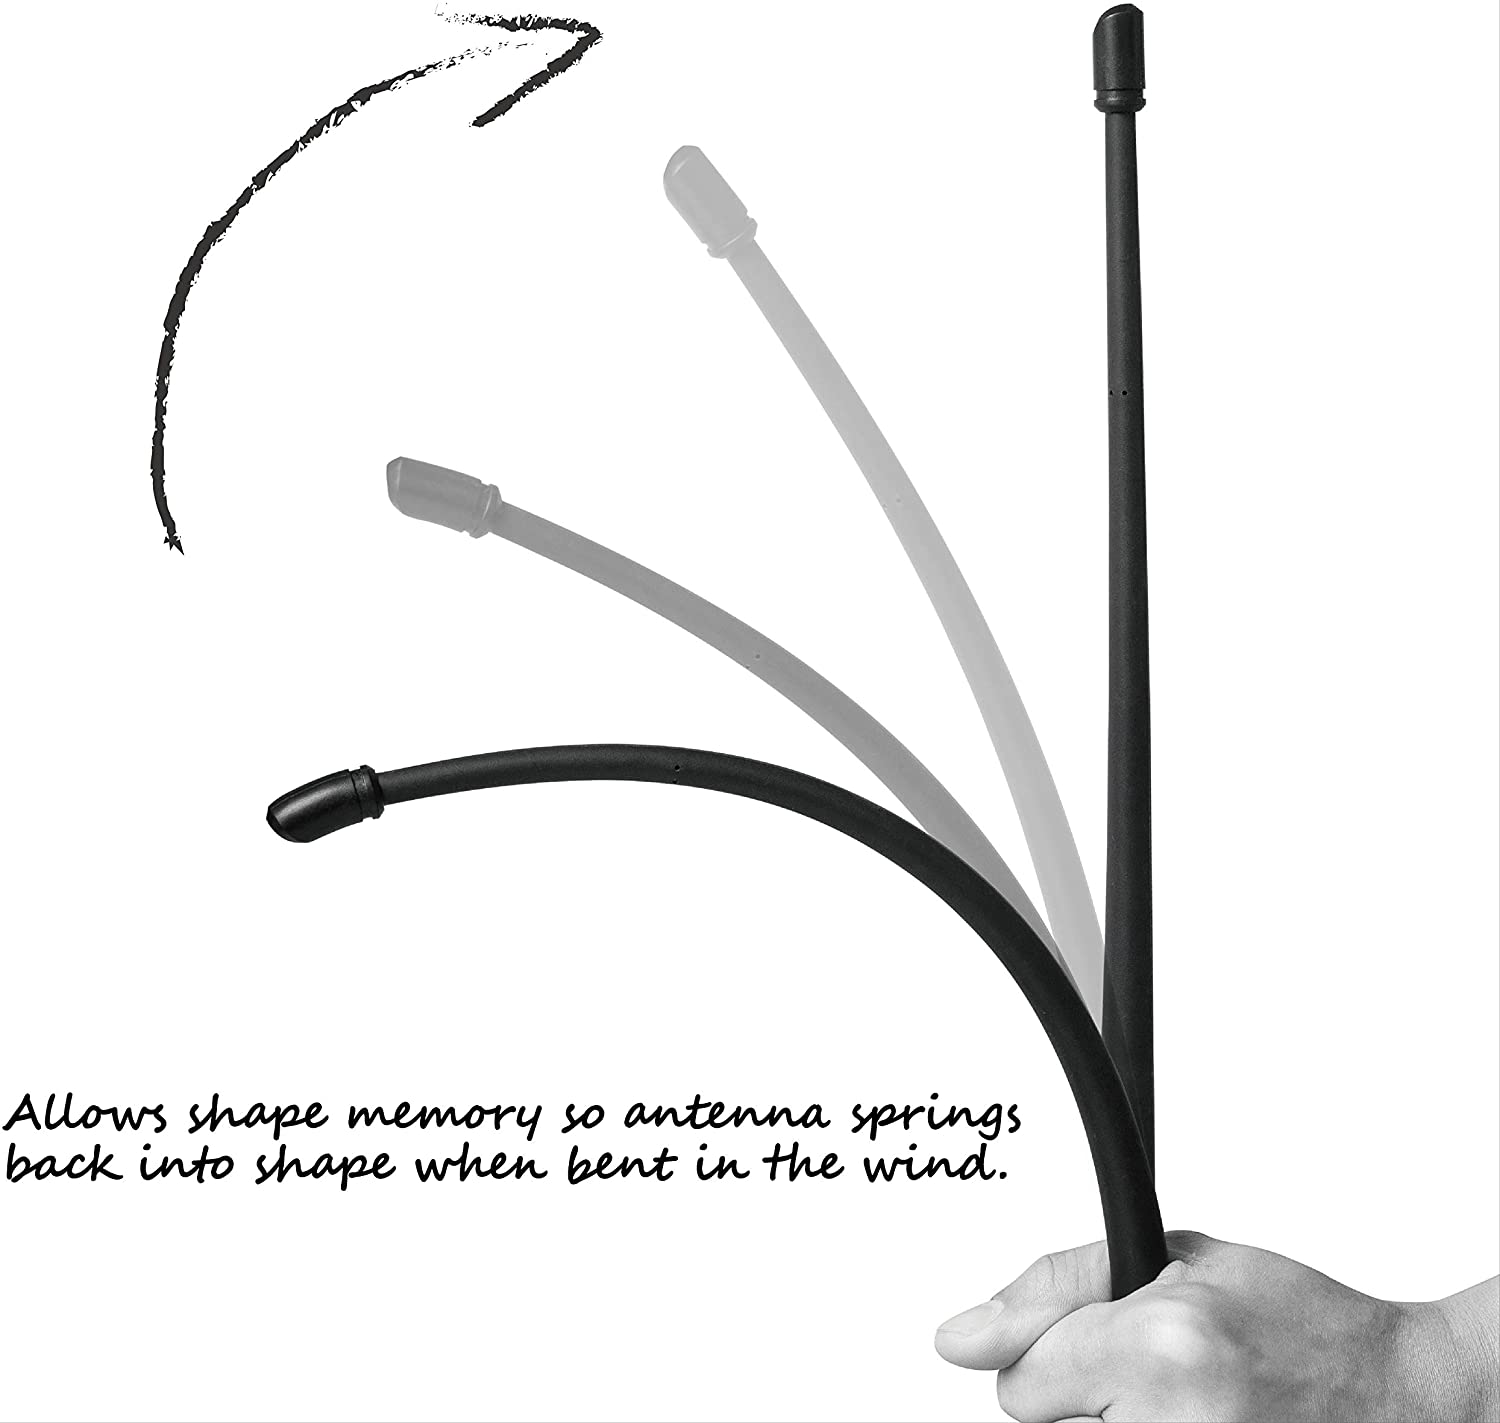 Rydonair Antenna Compatible with Jeep Wrangler JK JKU JL JLU Rubicon Sahara (2007-2021) | 13 inches Flexible Rubber Antenna Replacement | Designed for Optimized FM/AM Reception